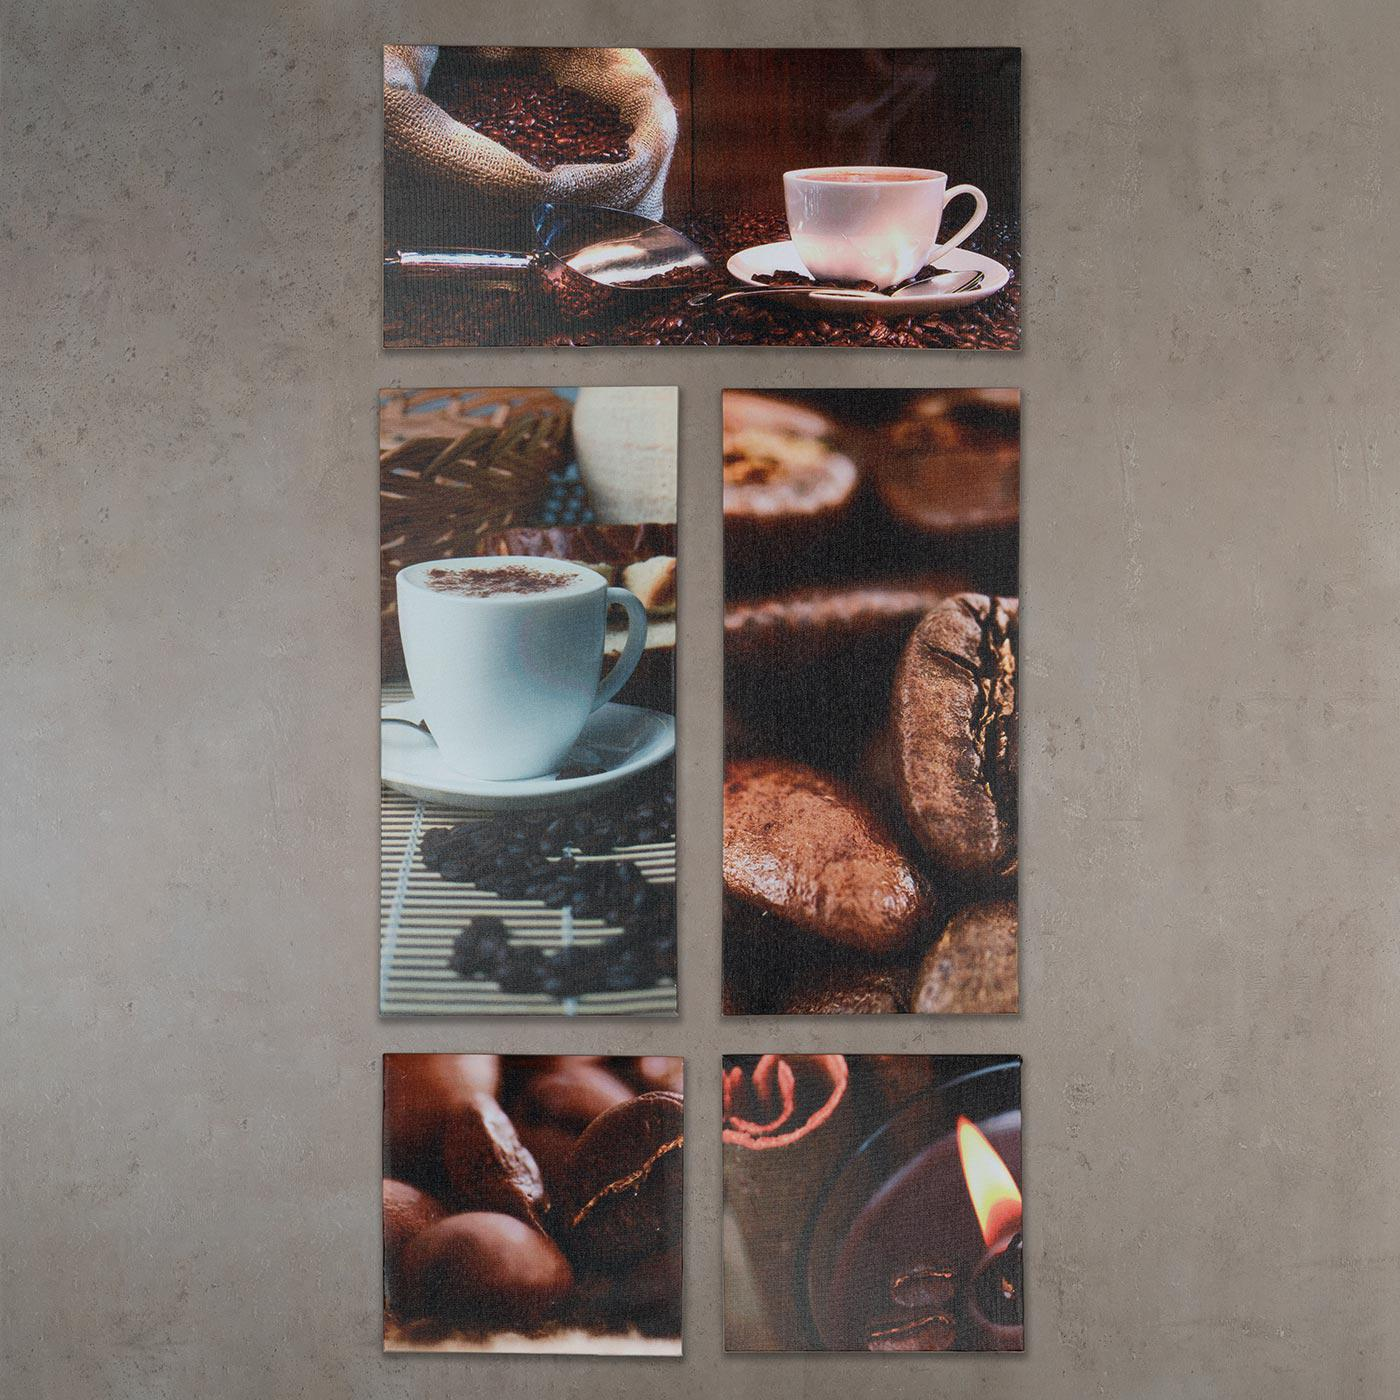 Entzuckend Good Cheap Affordable Wandbild Er Set Xcm Leinwand Kaffee Cappuccino Kche  Deko Bild With Kaffee Bilder Auf Leinwand With Glasbilder Kche Kaffee With  ...